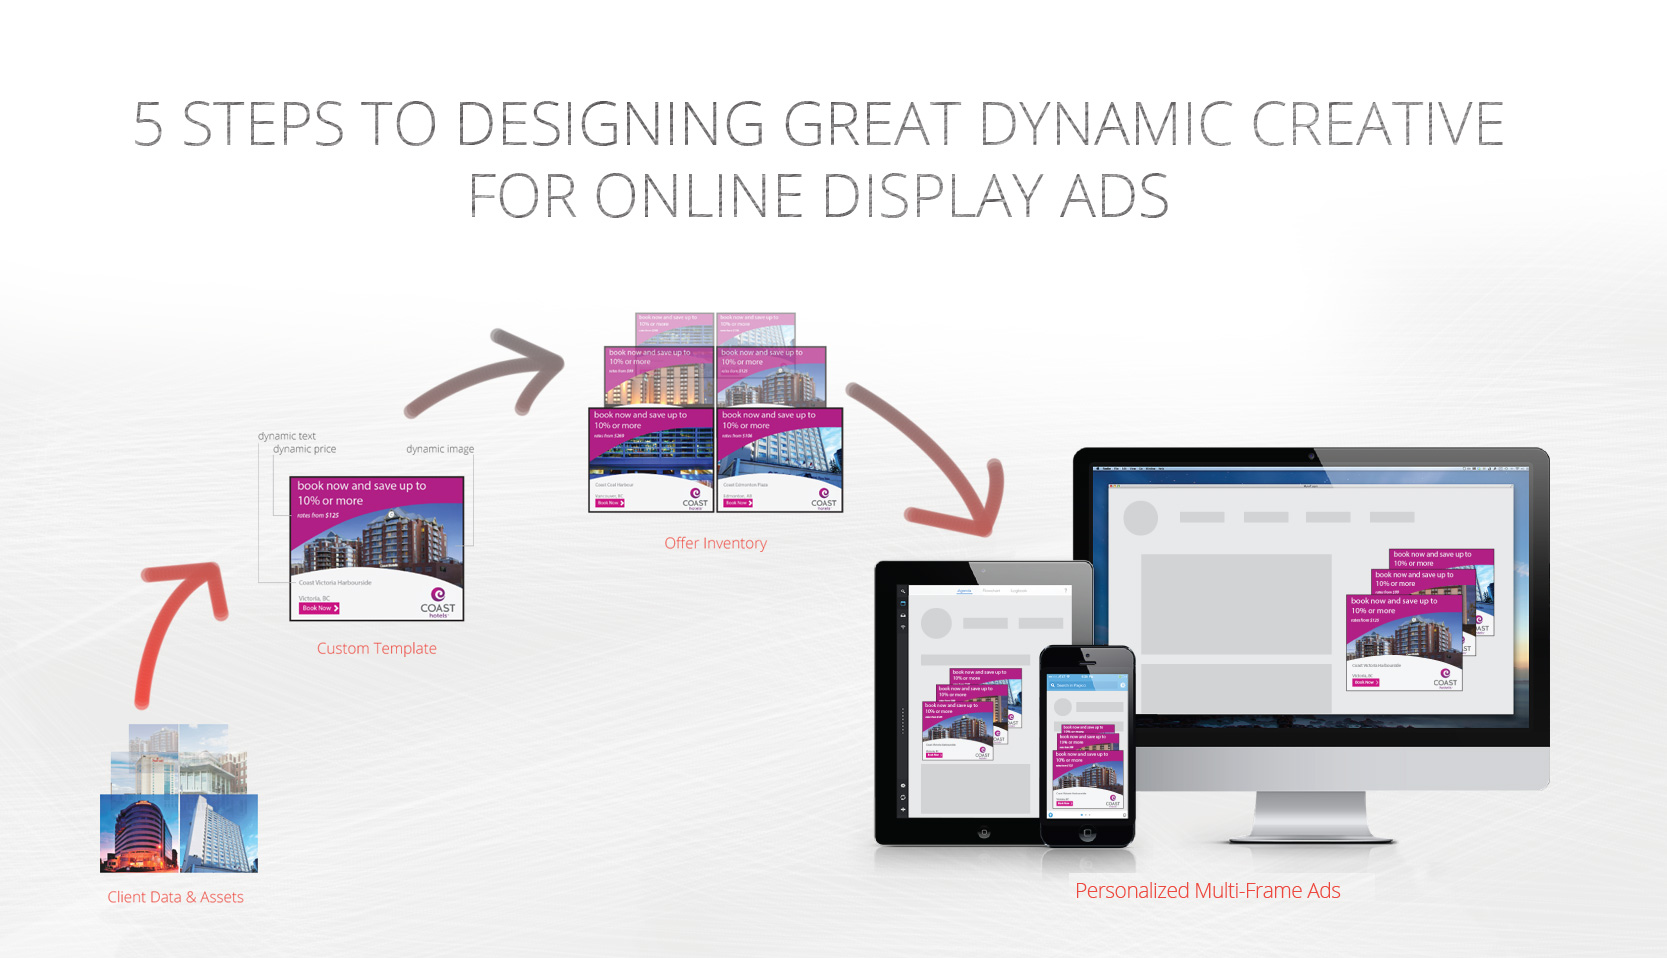 5 Steps To Designing Great Dynamic Creative For Online